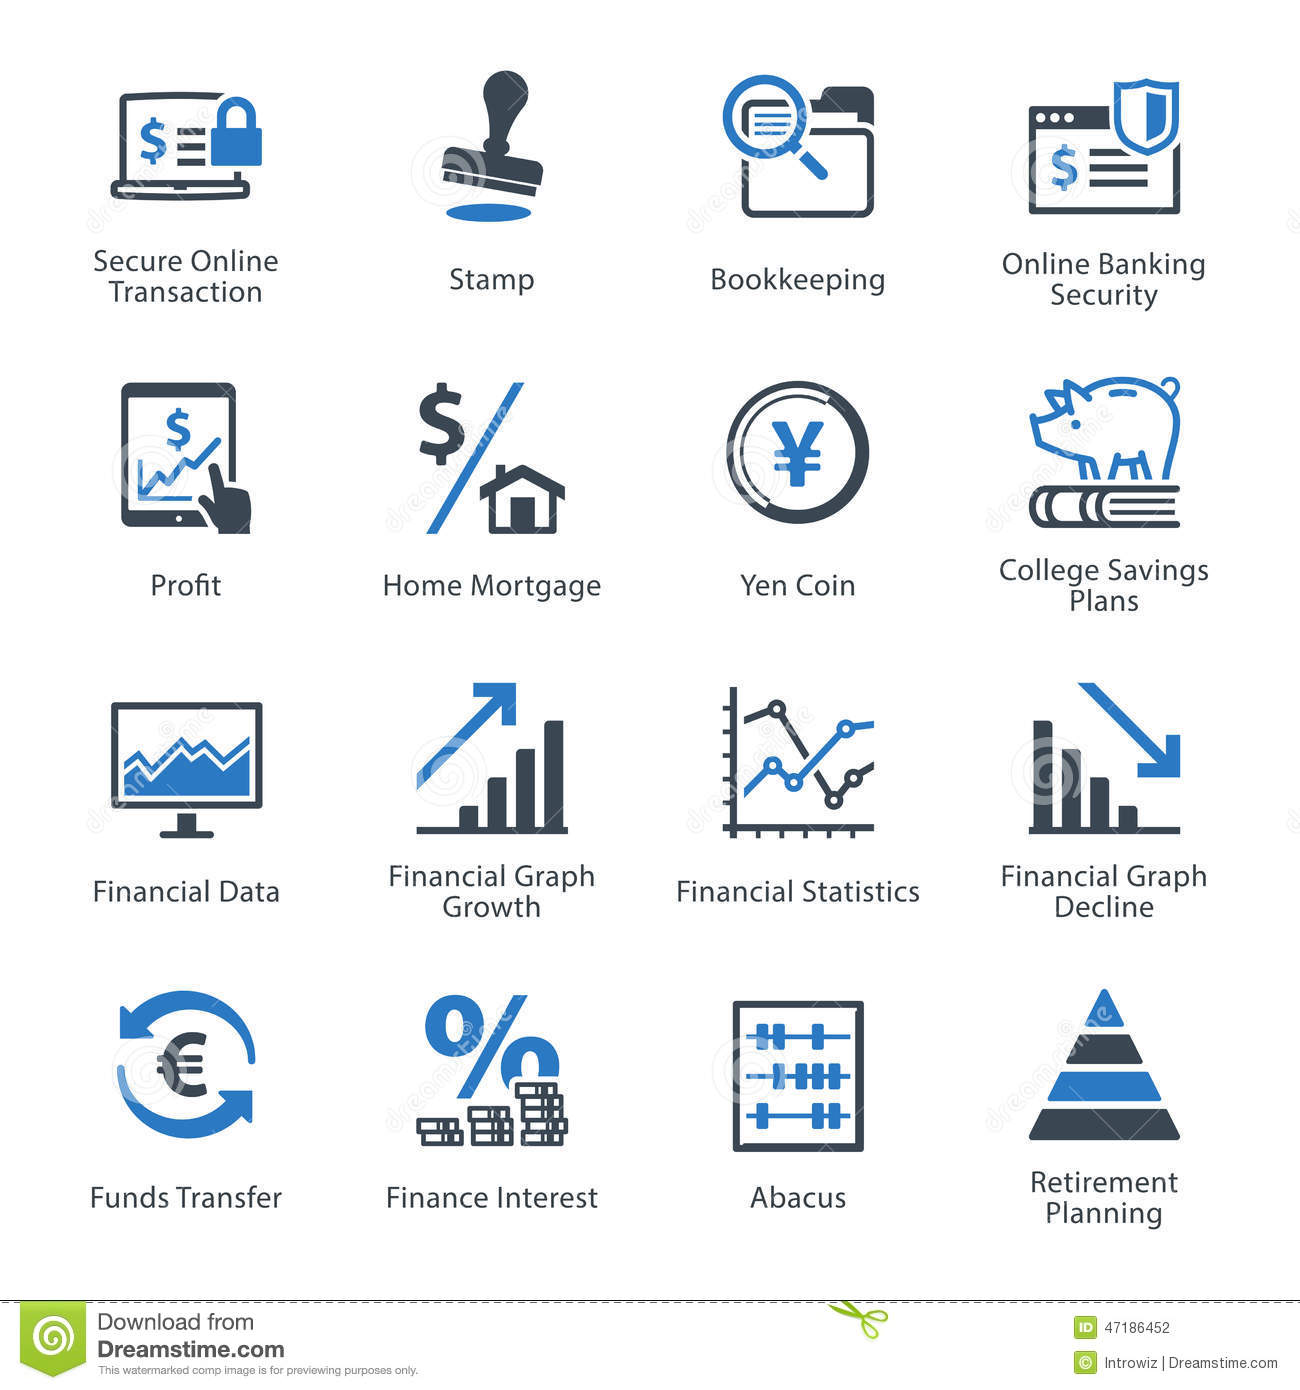 Business Finance: Personal & Business Finance Icons Set 3